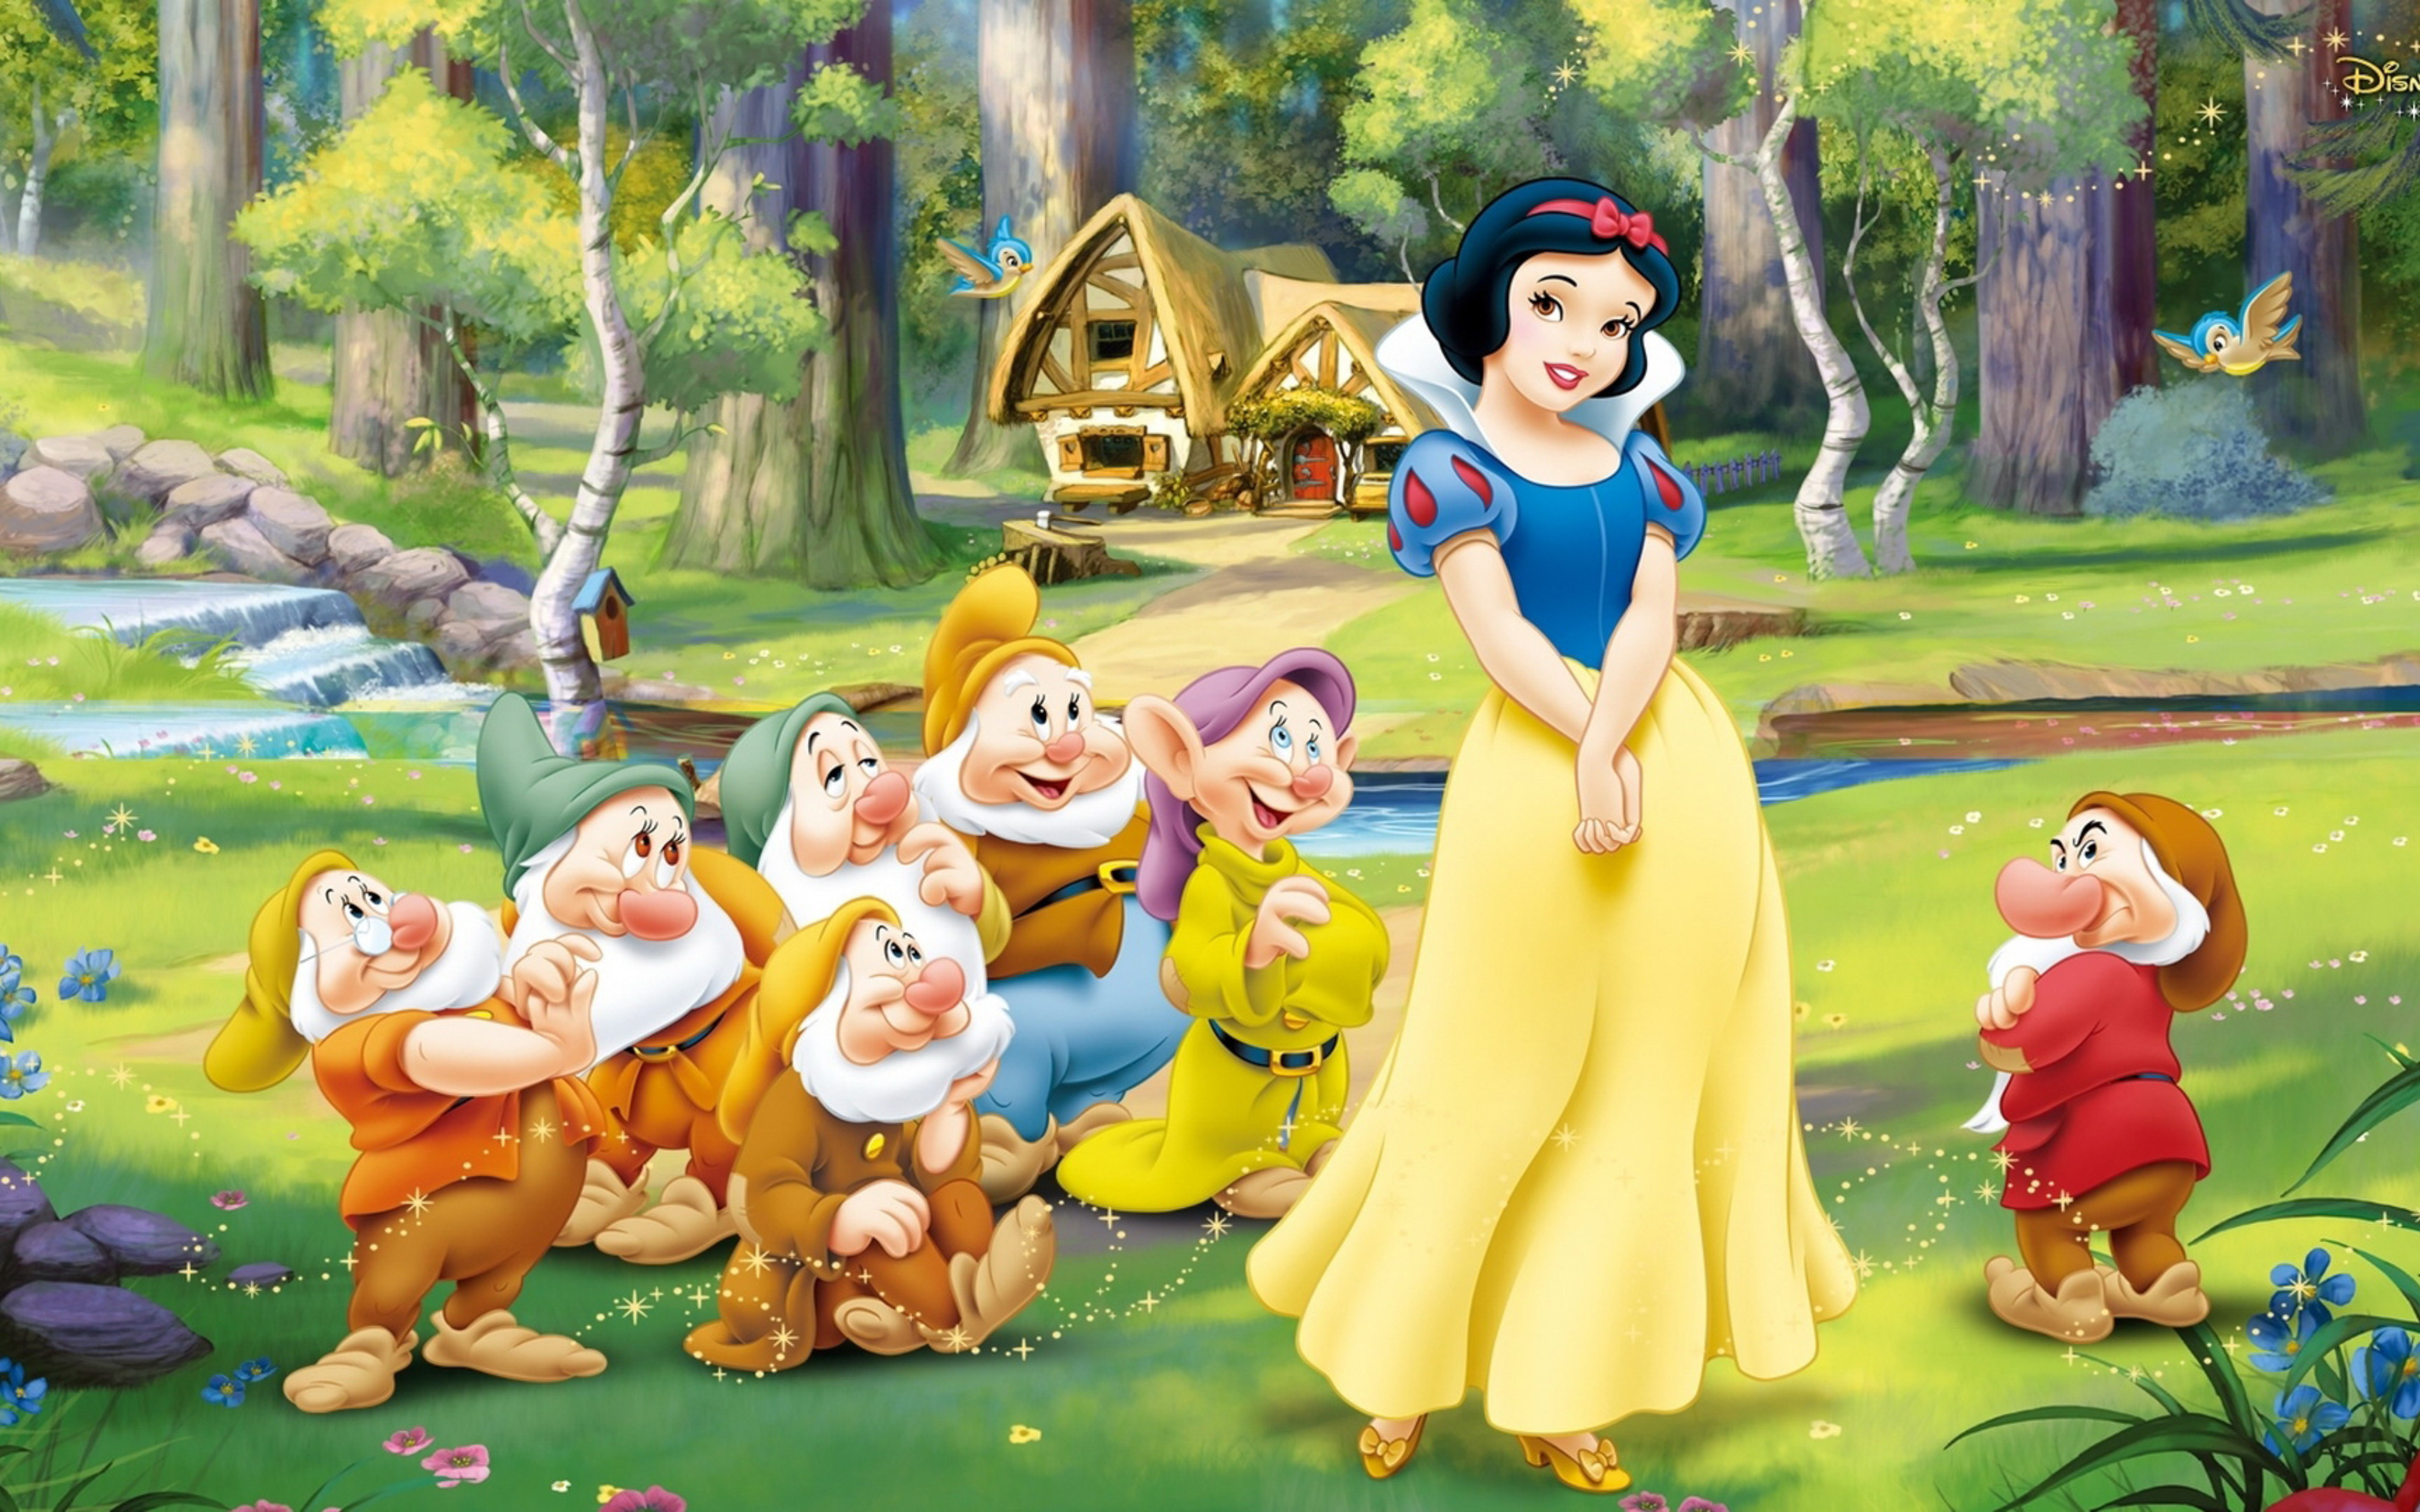 Download-x-Snow-White-and-the-seven-dwarfs-3d-Cartoon-and-anime-wallp-wallpaper-wpc5809959